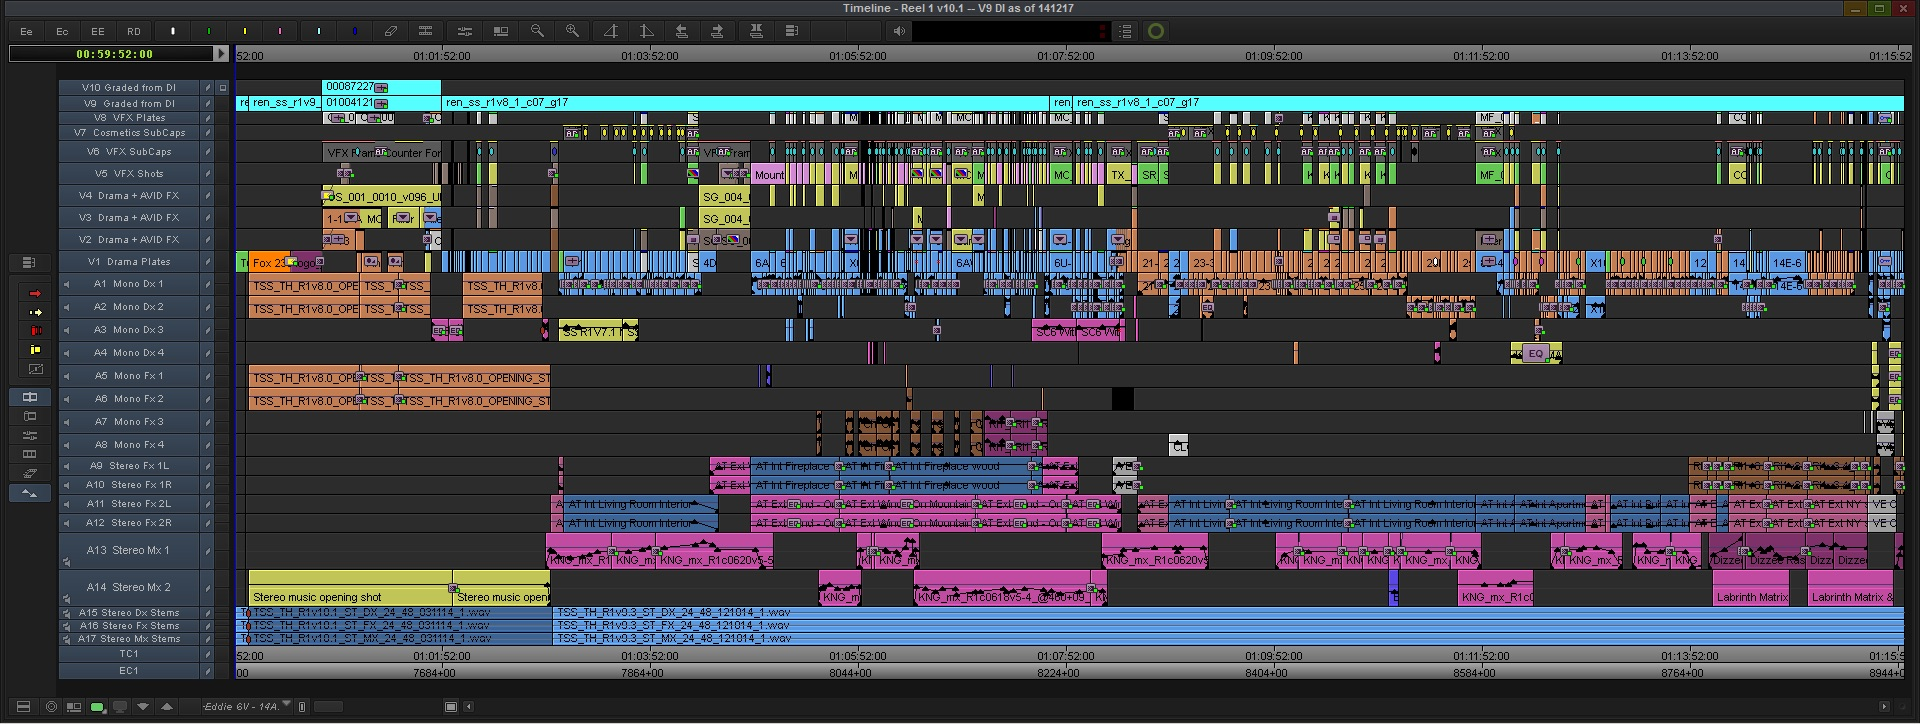 Kingsman Final Reel 1 Avid MC Timeline